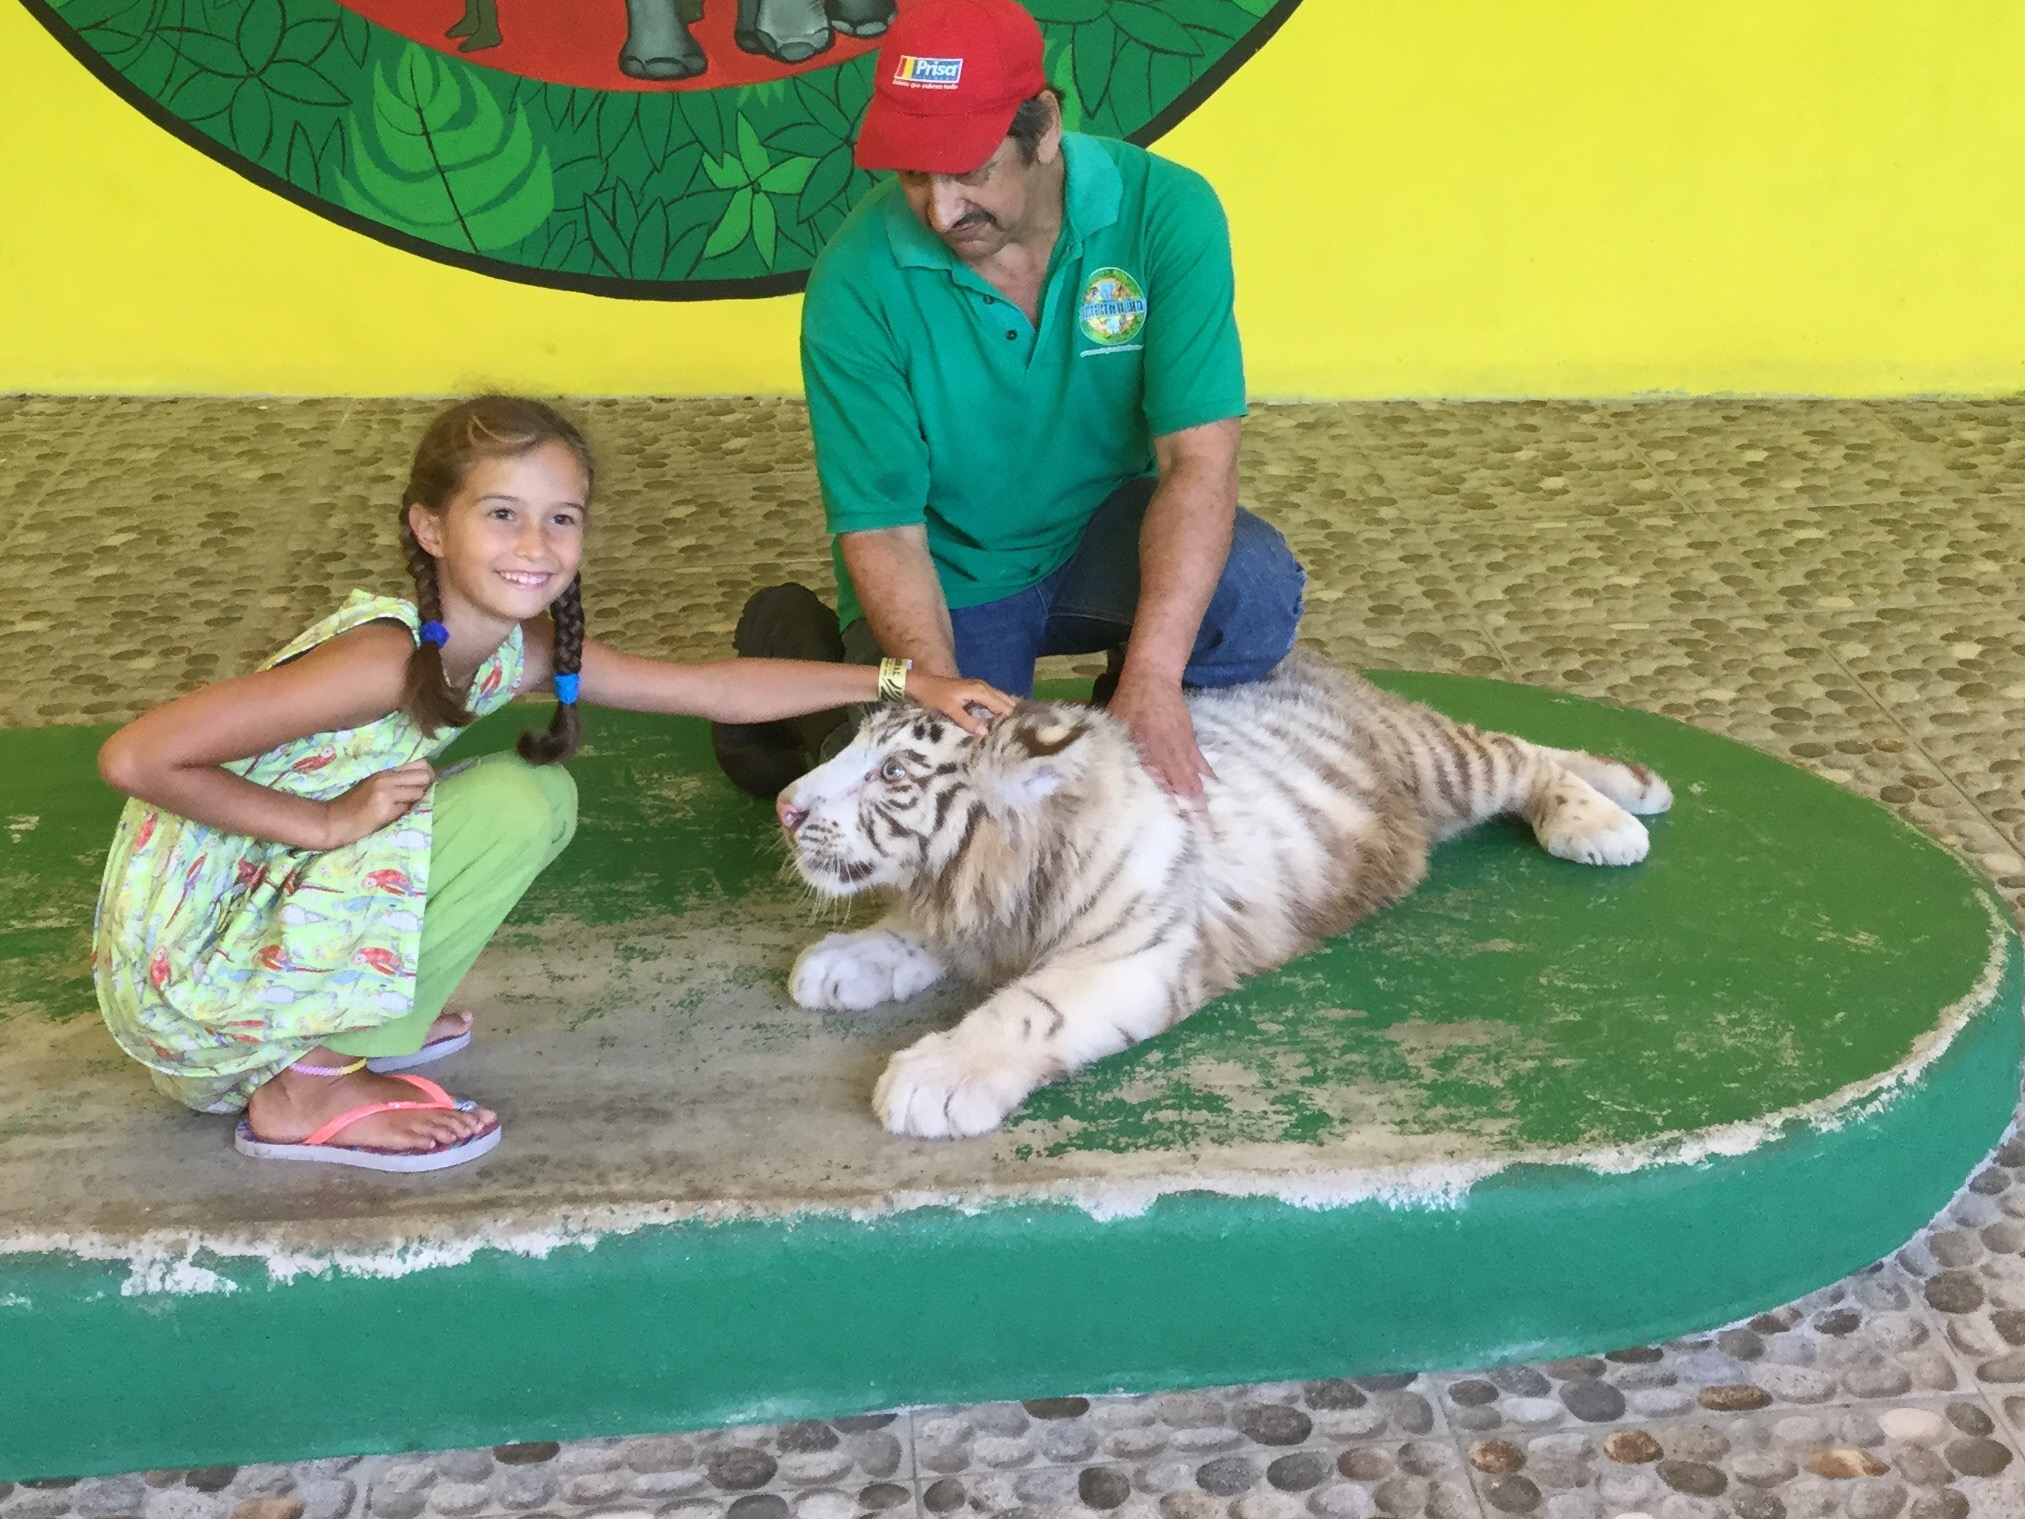 Here Lili is interacting with a Siberian tiger cub.